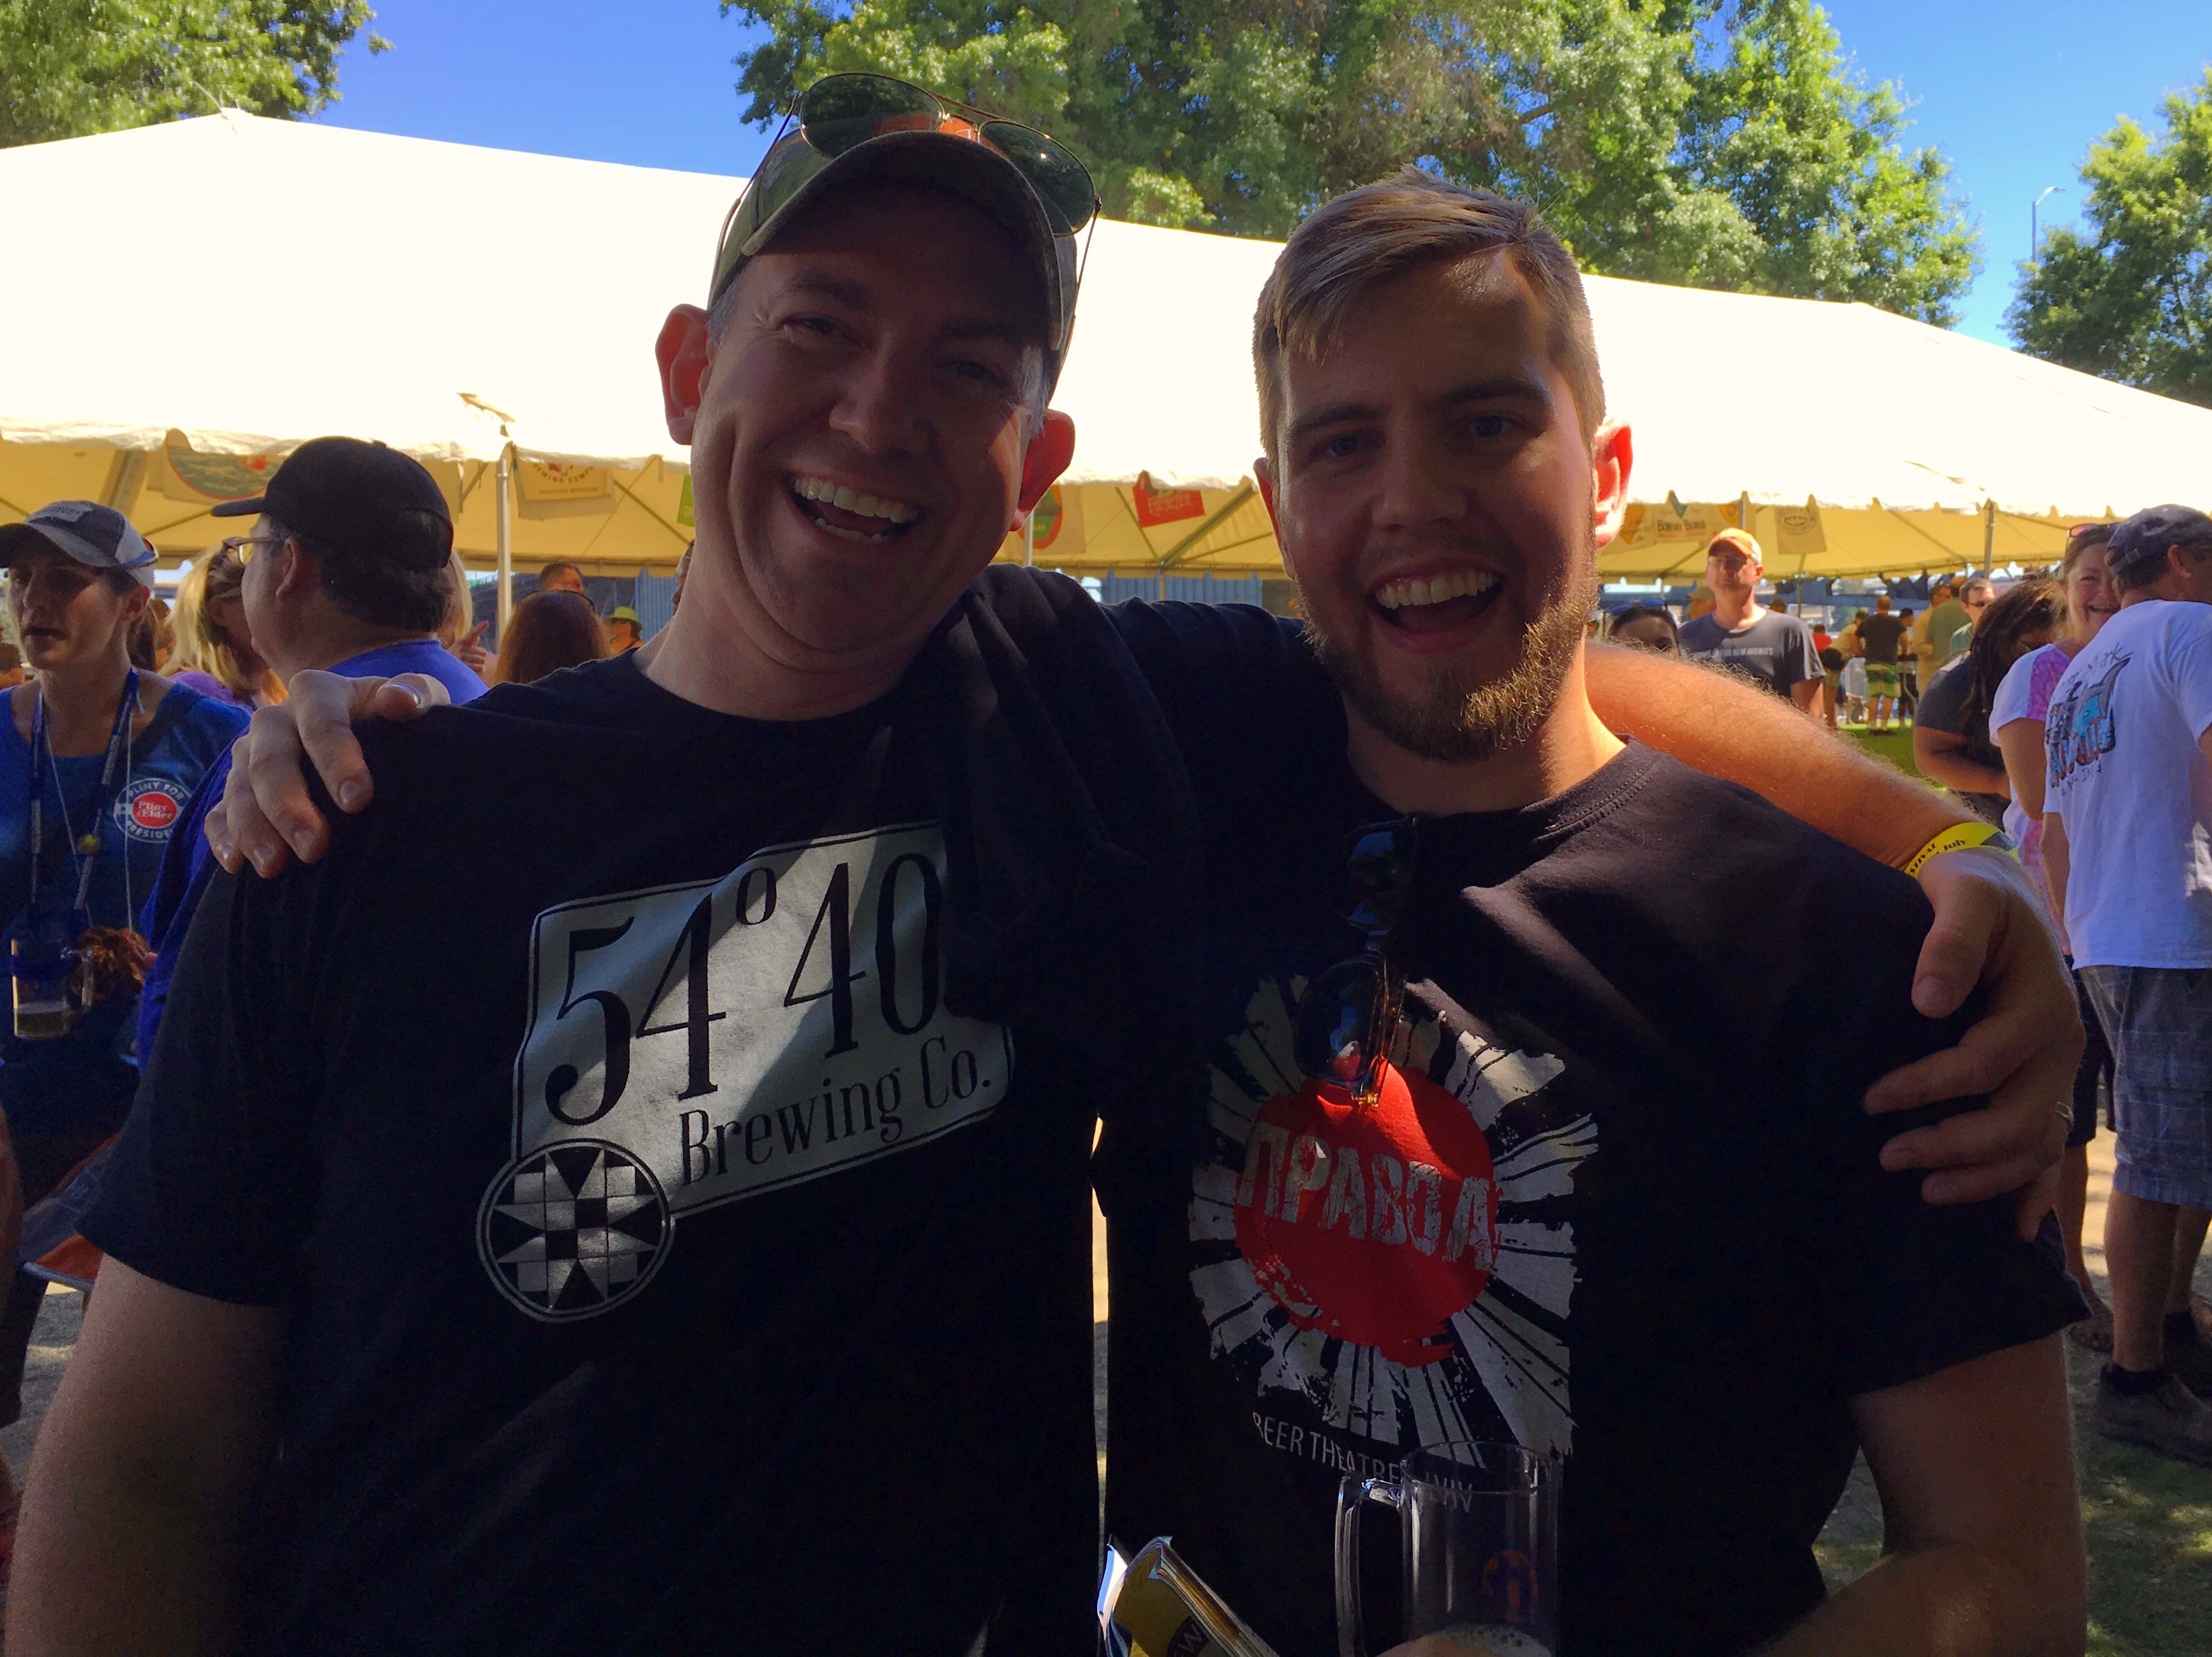 Former co-workers, Bolt Minister from 54 40 Brewing and Cory McGuinnes from Pravda Beer Theatre, reunite at the 2016 Oregon Brewers Festival. Cory traveled all the way back from Lviv, Ukraine where he now resides and brews to attend the 2016 OBF.